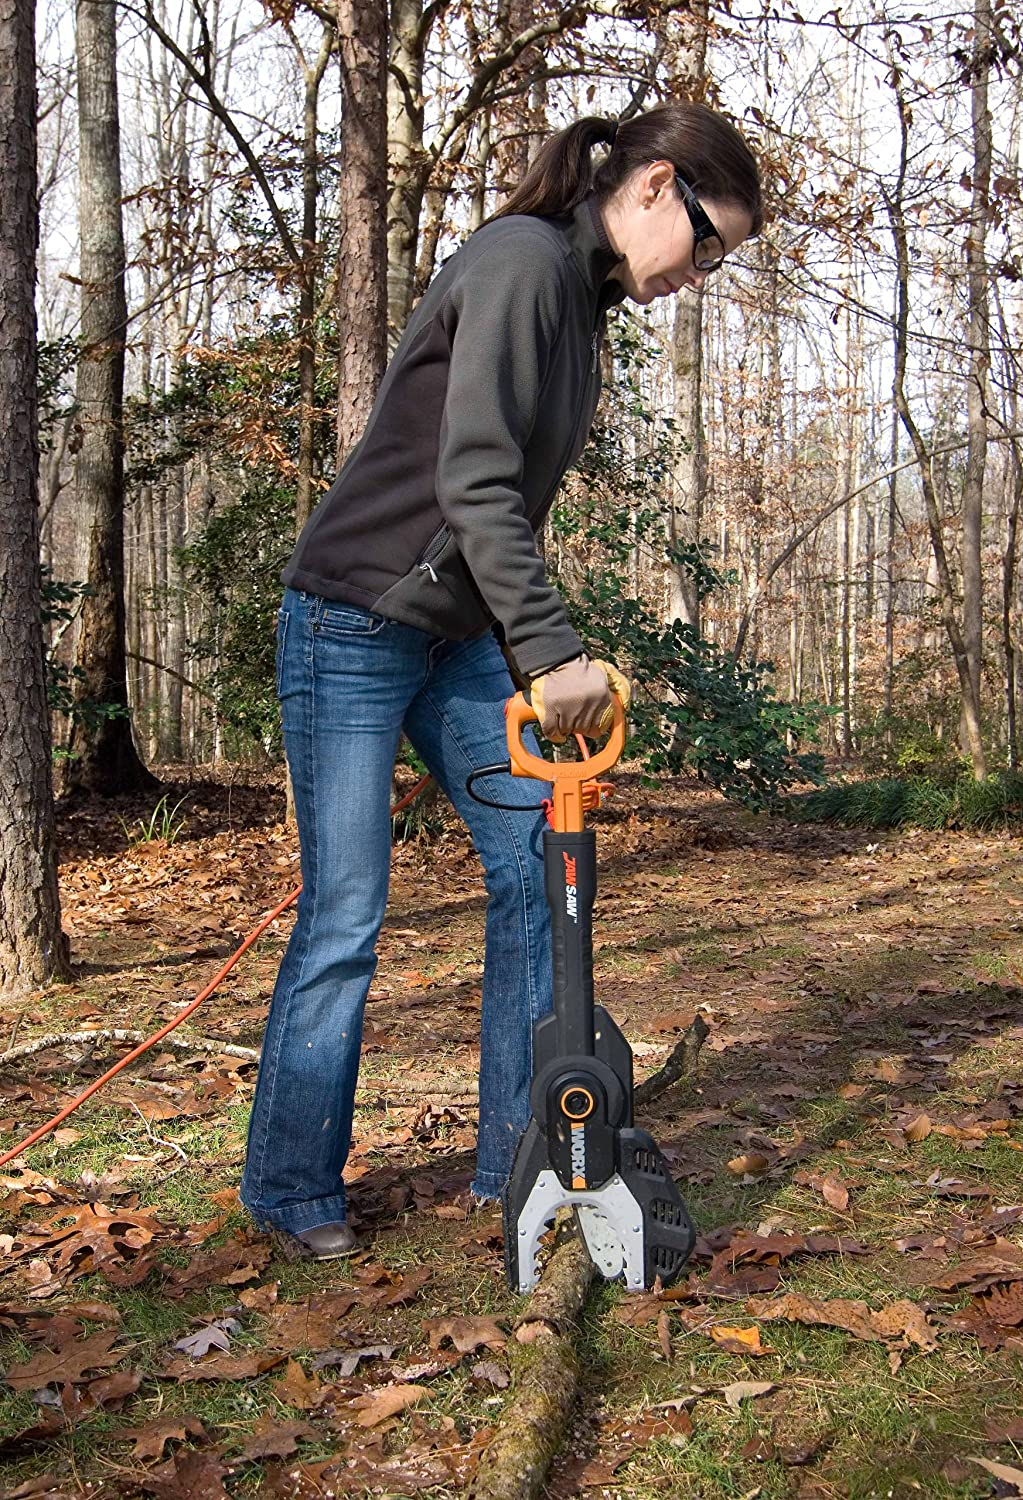 WORX WG307 Chainsaws product image 3